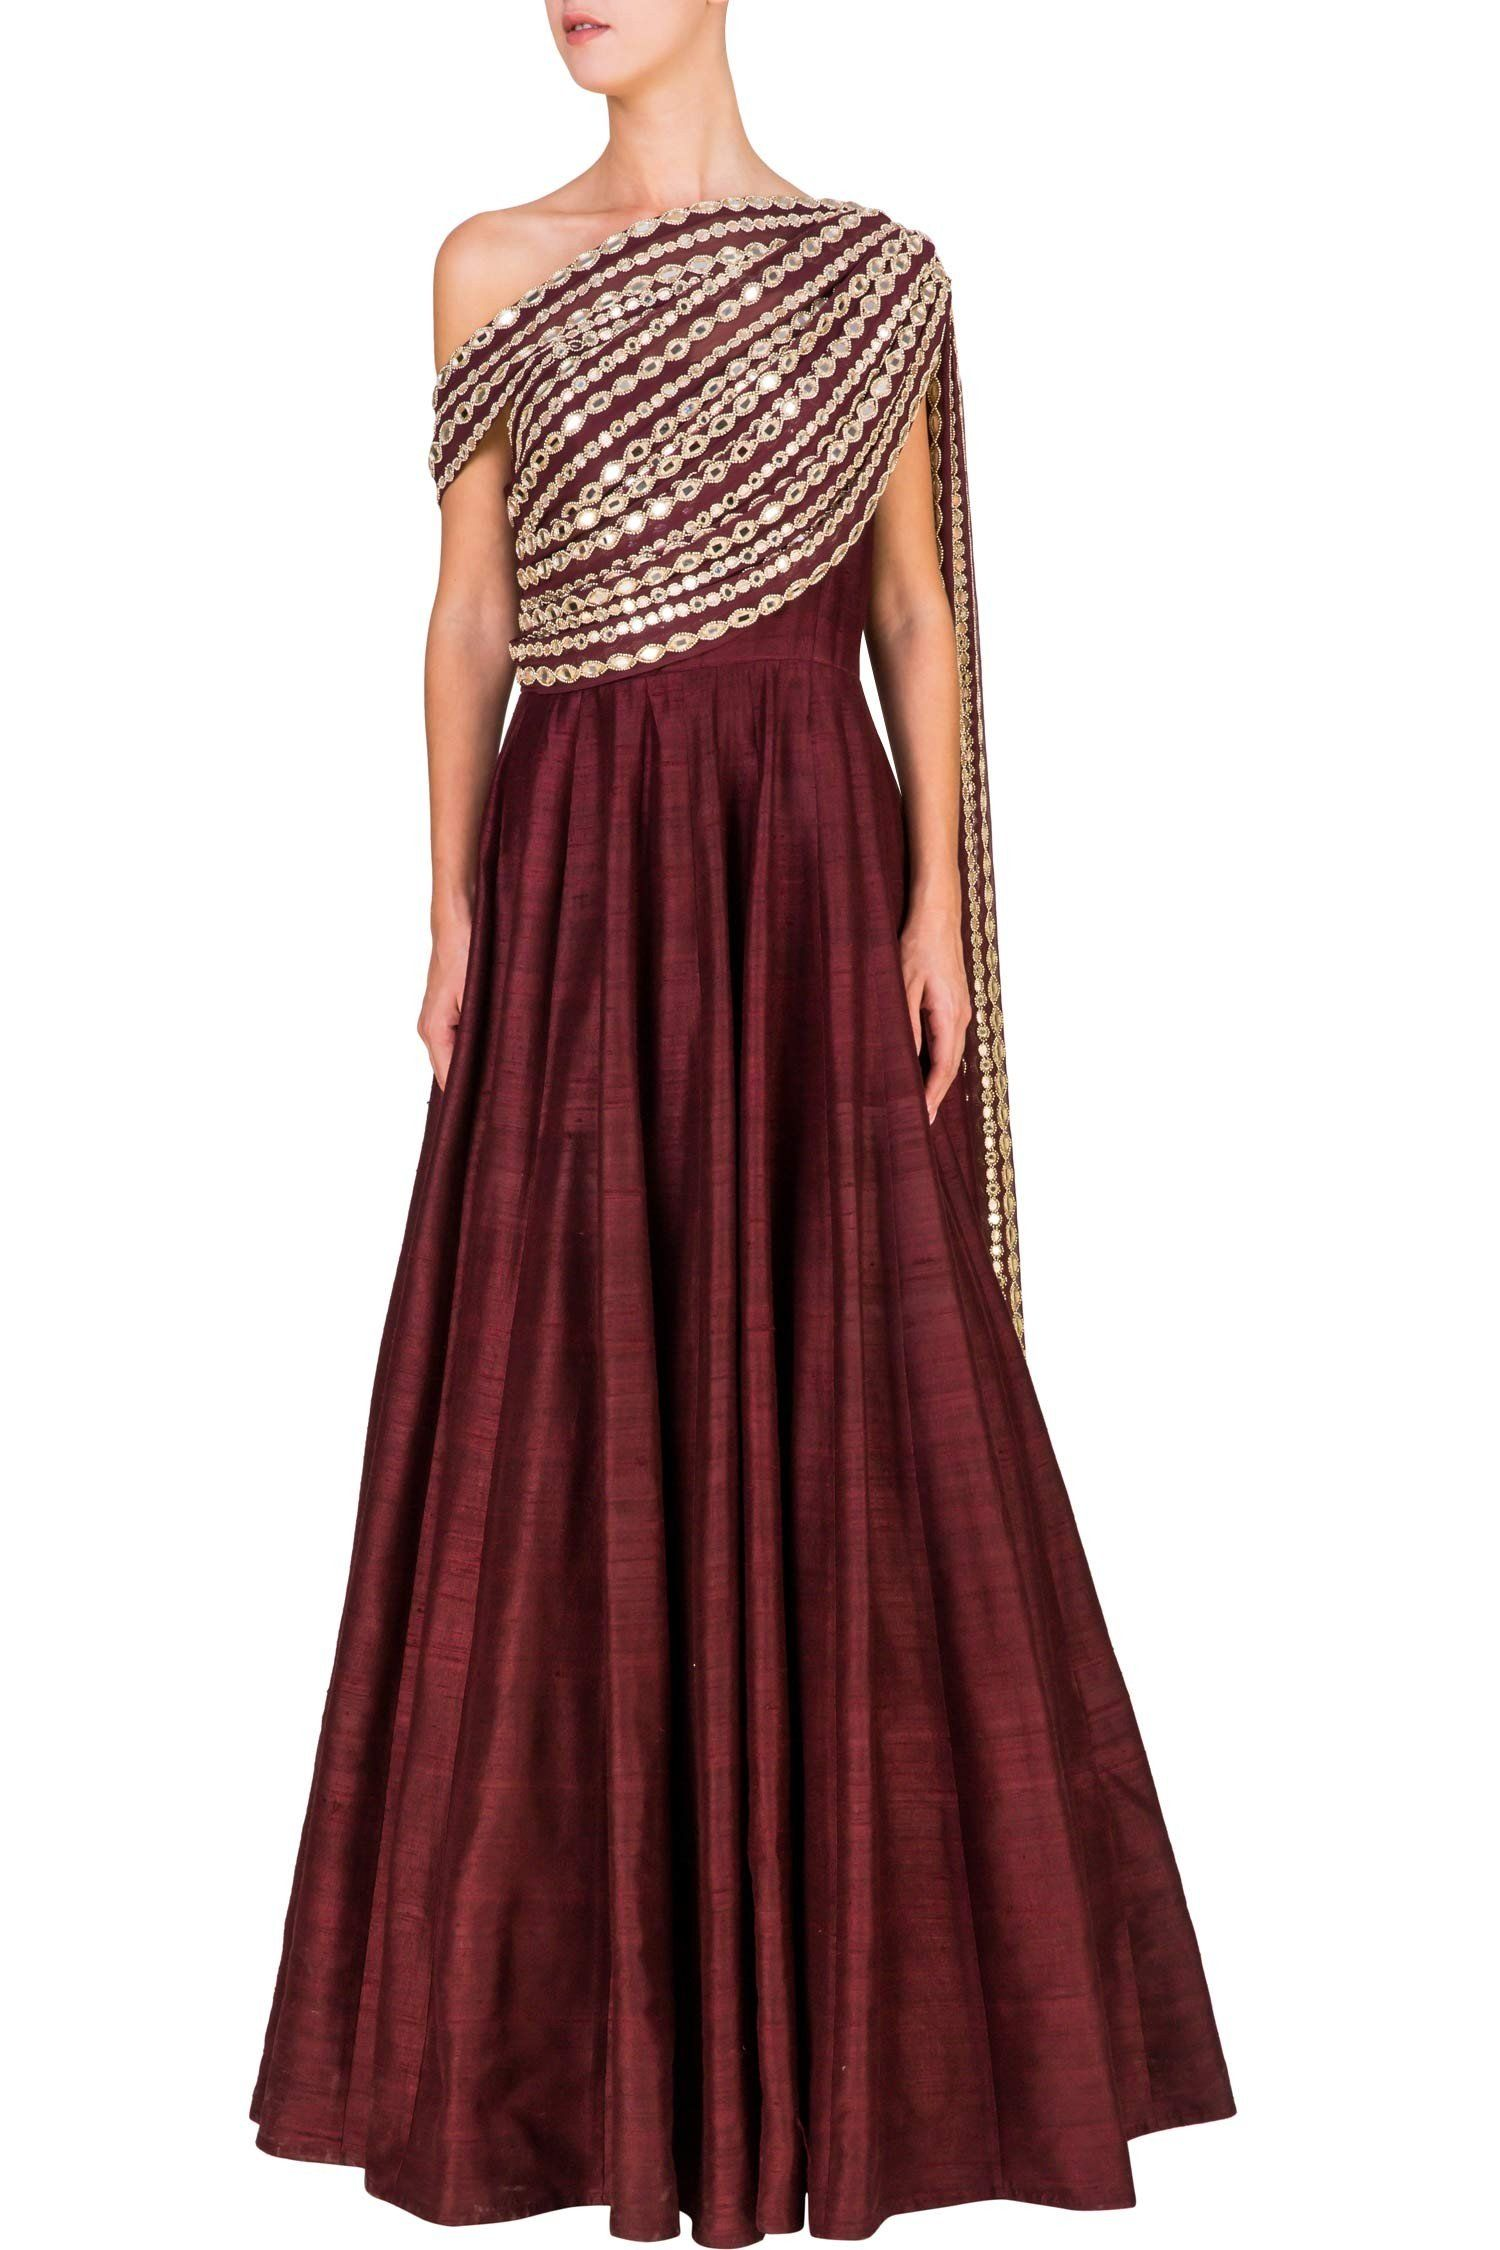 Off-shoulder anarkali with mirrored dupatta | Indian fusion | Pinterest